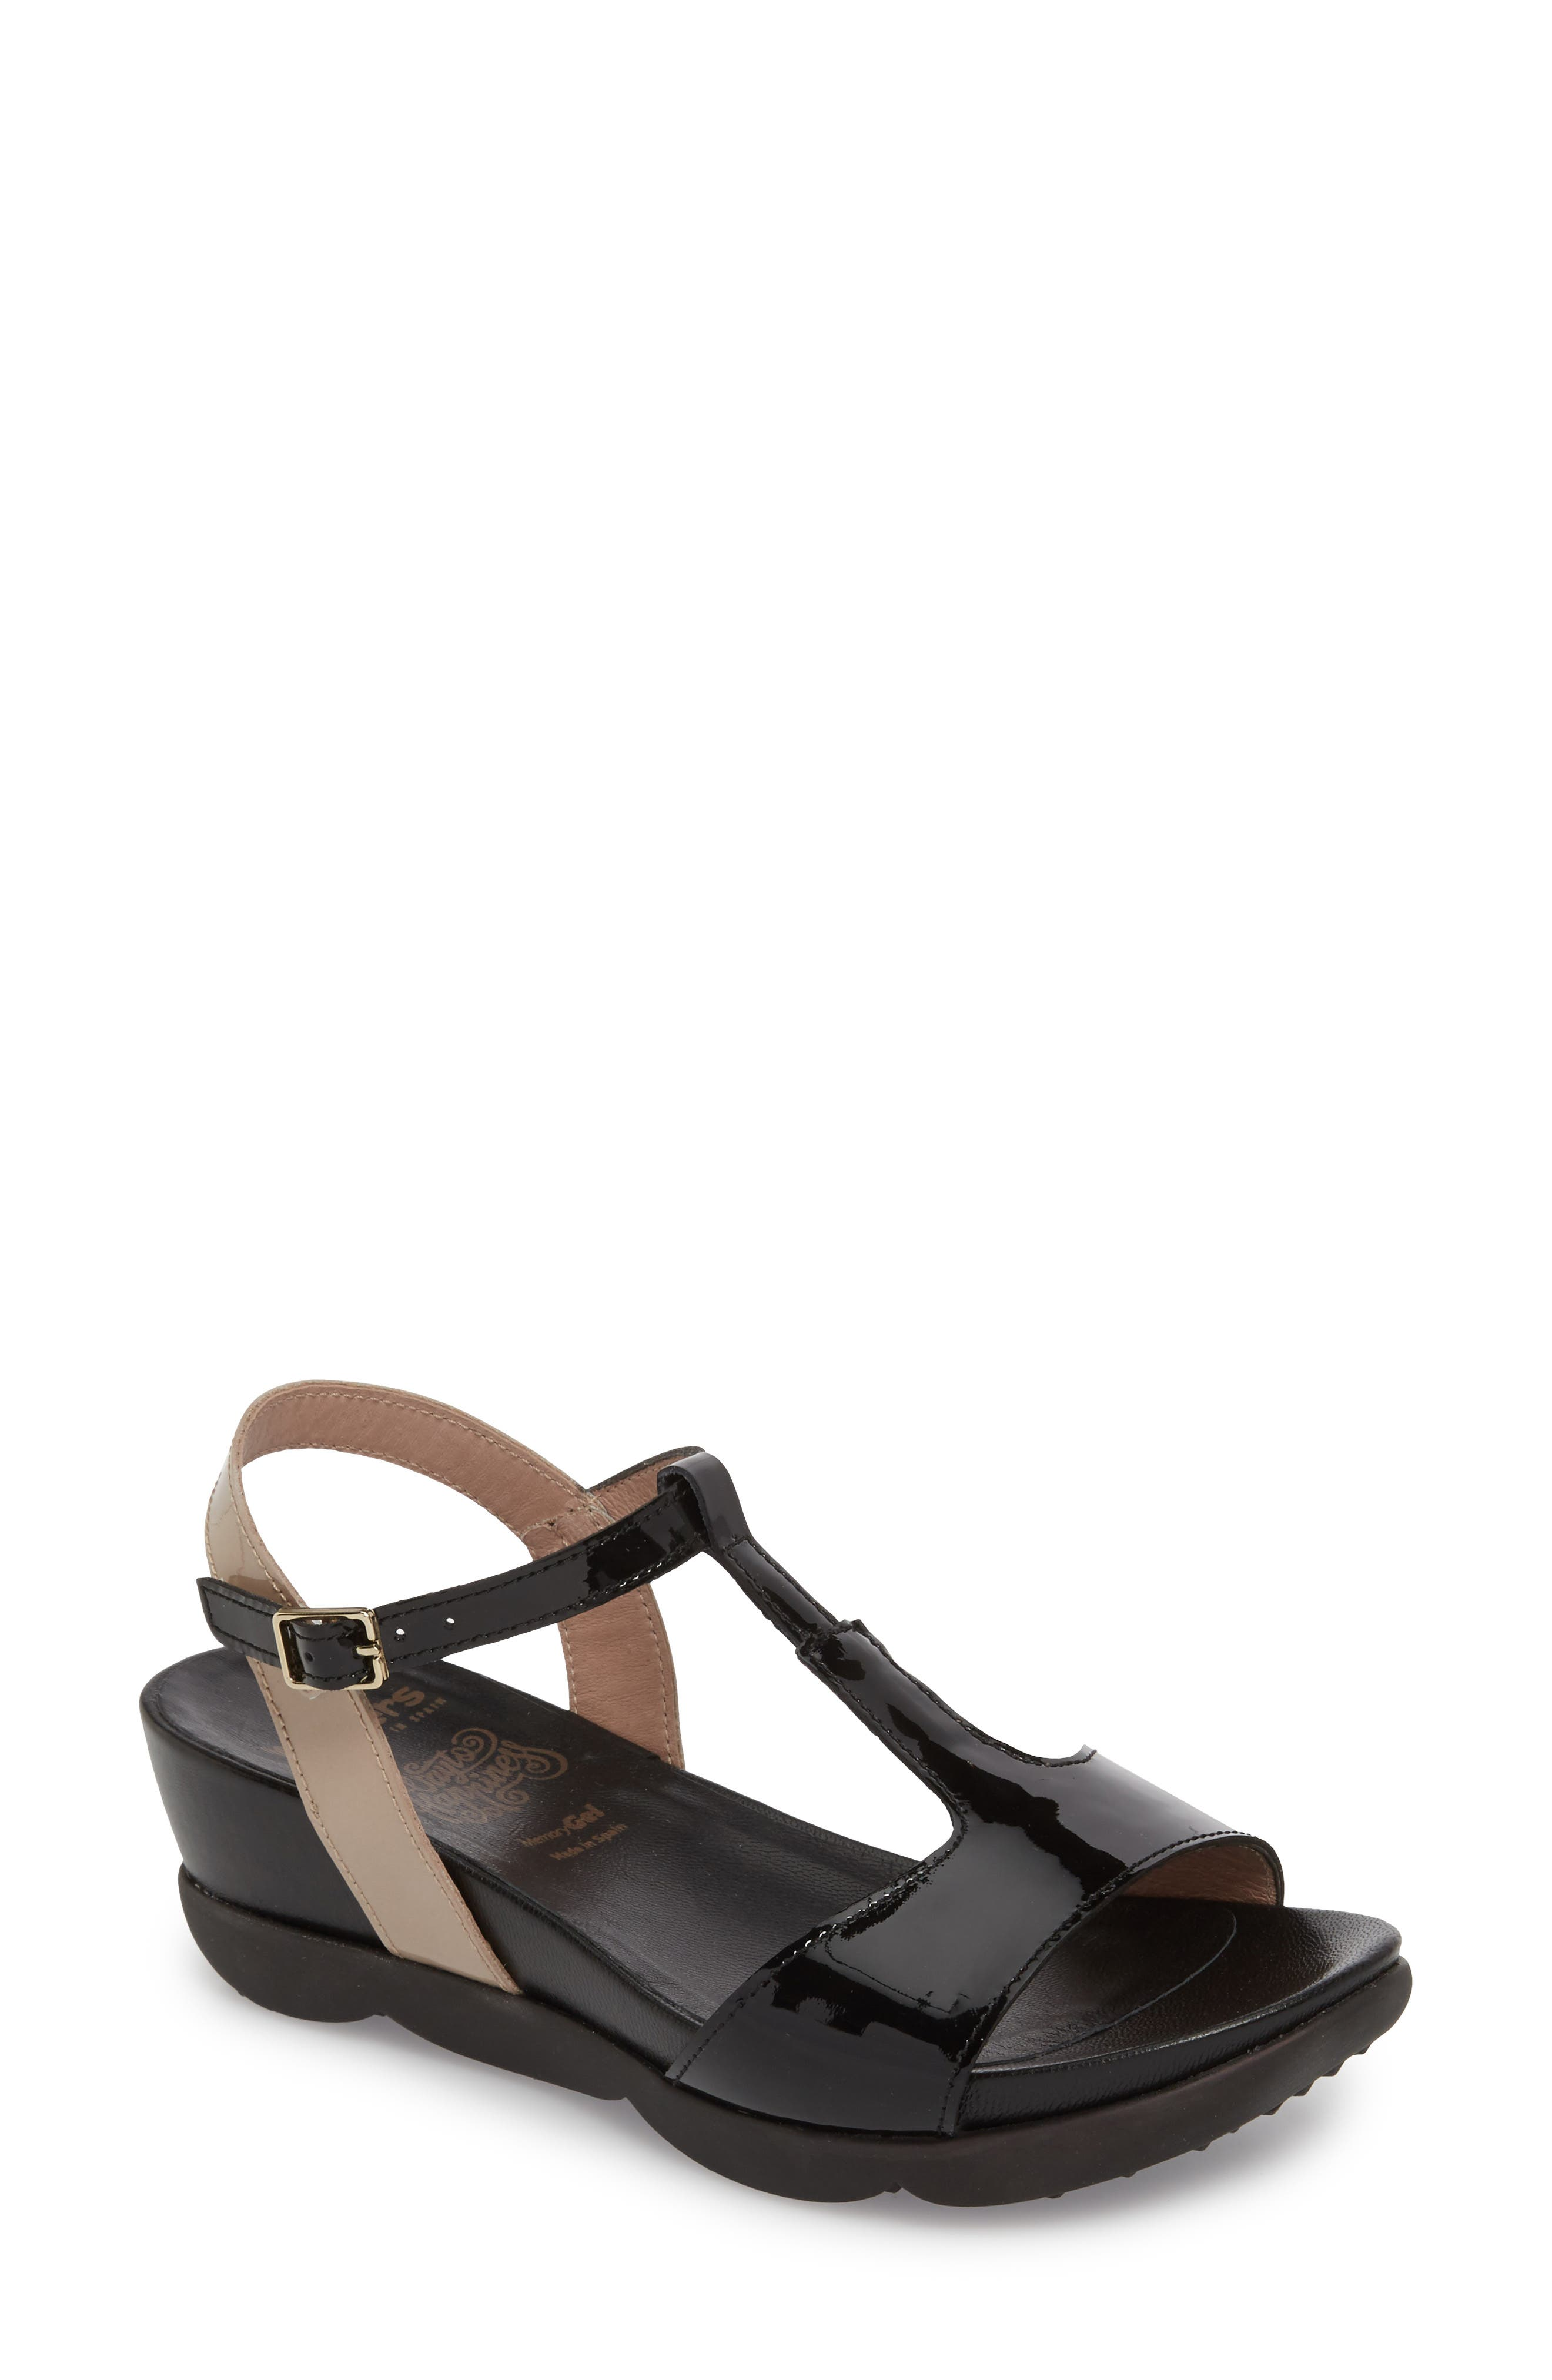 Wedge Sandal, Main, color, BLACK/ TAUPE LEATHER